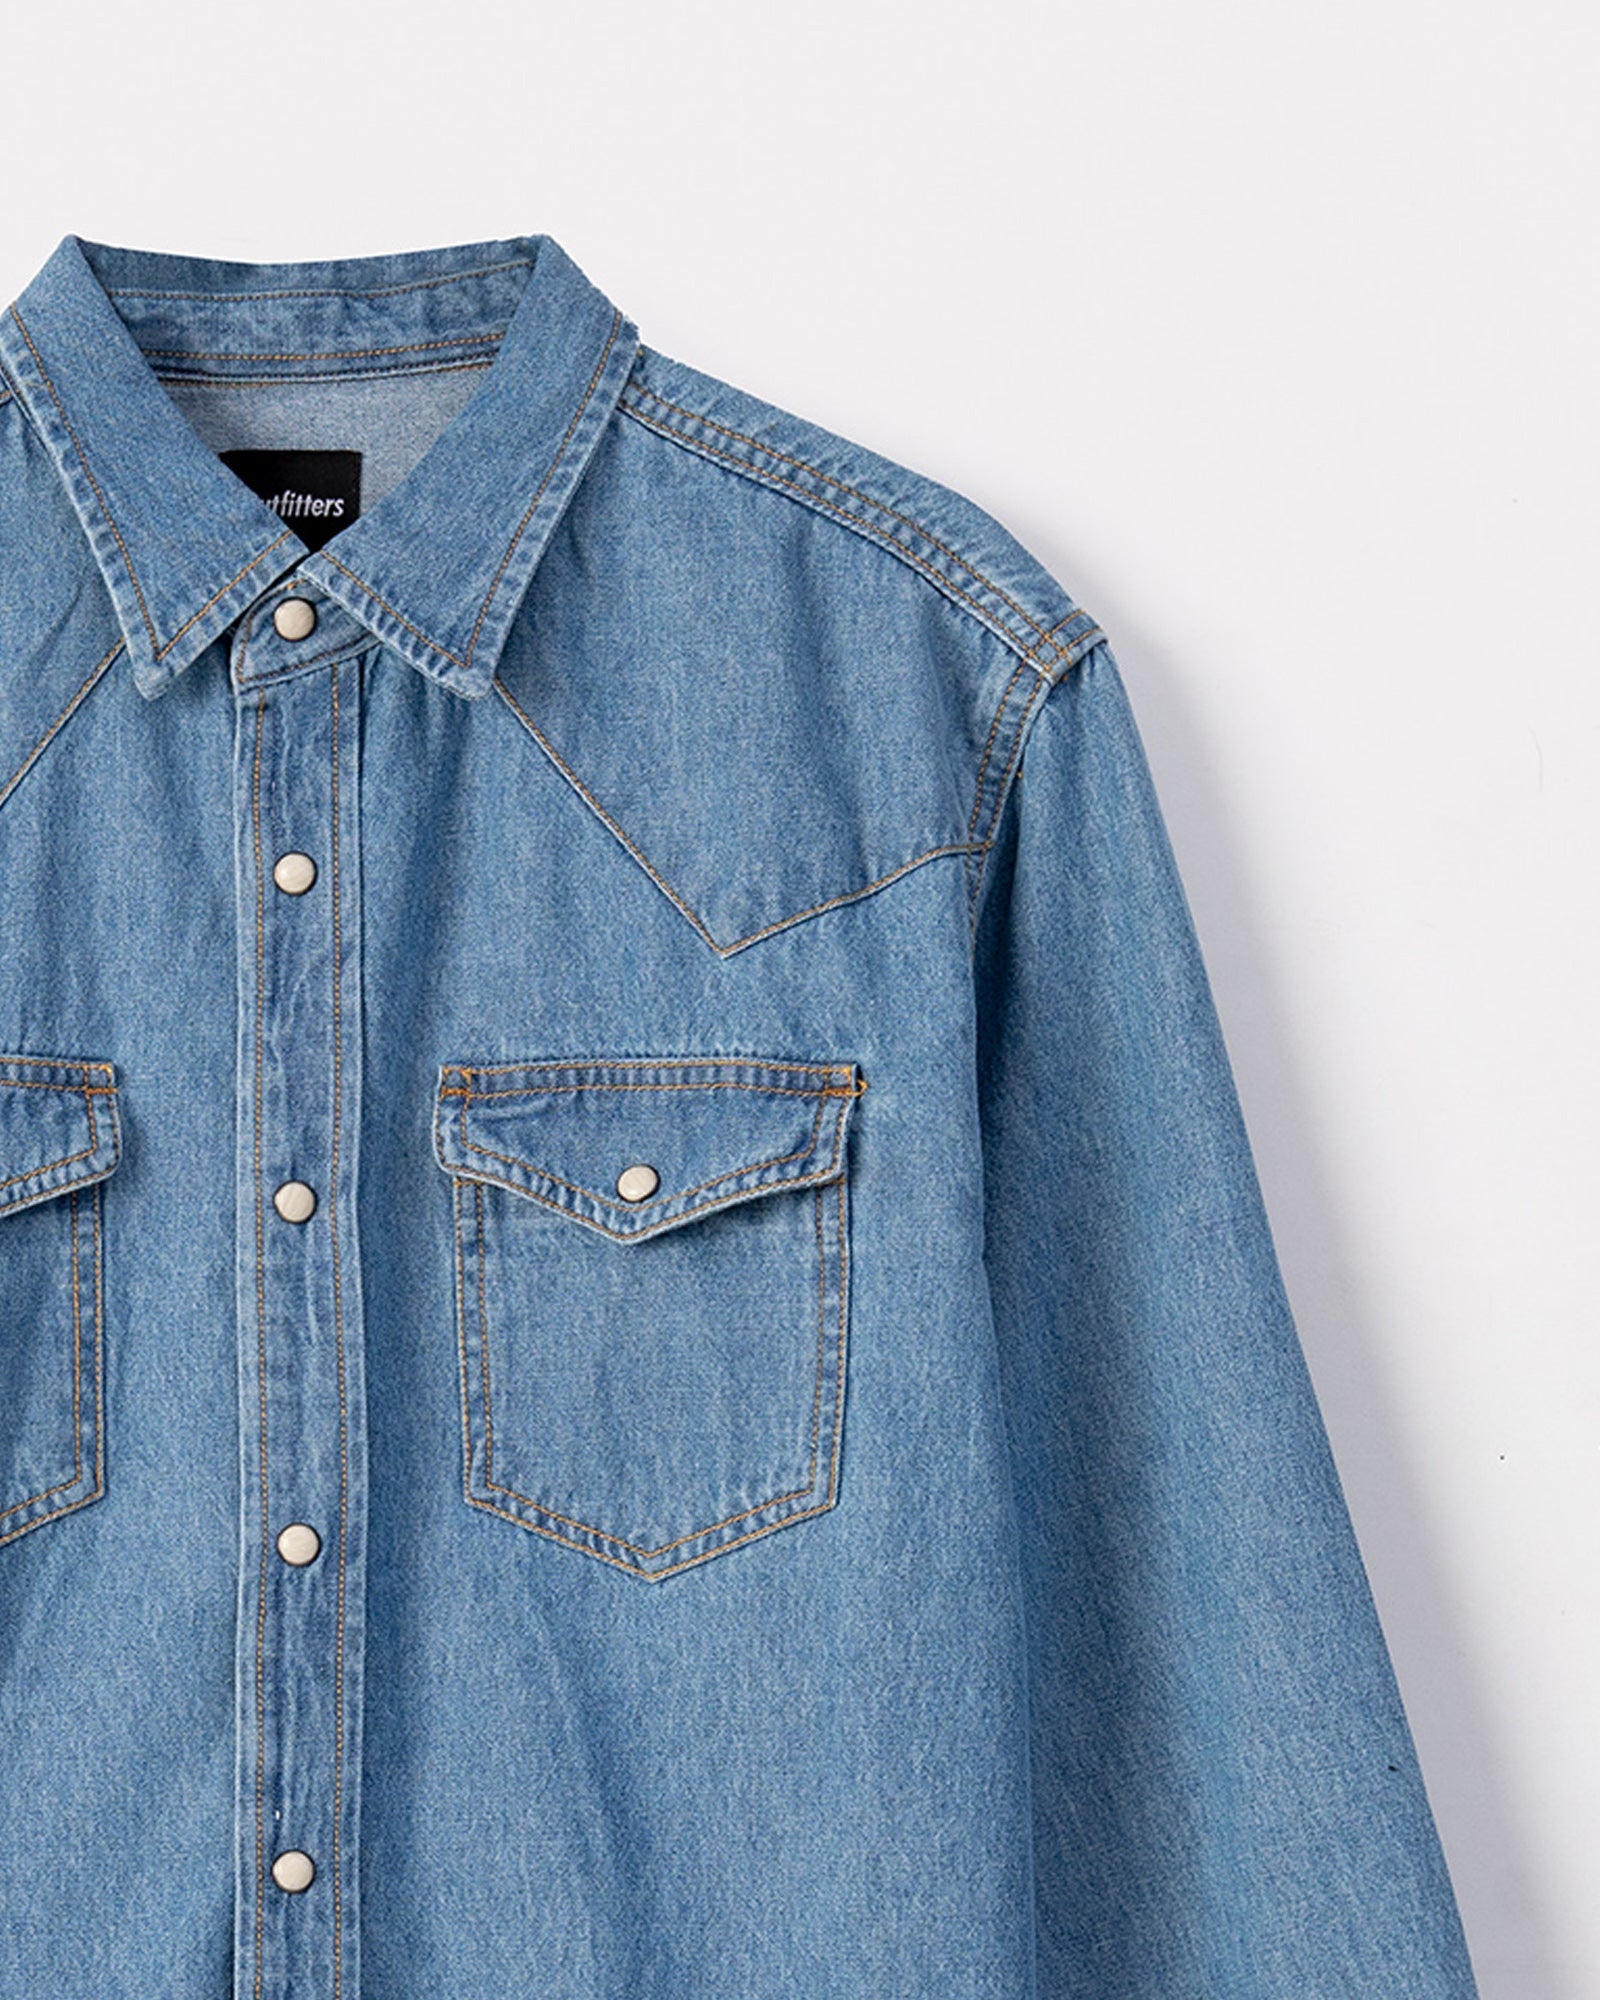 Western Styled Denim Shirt with Press Buttons